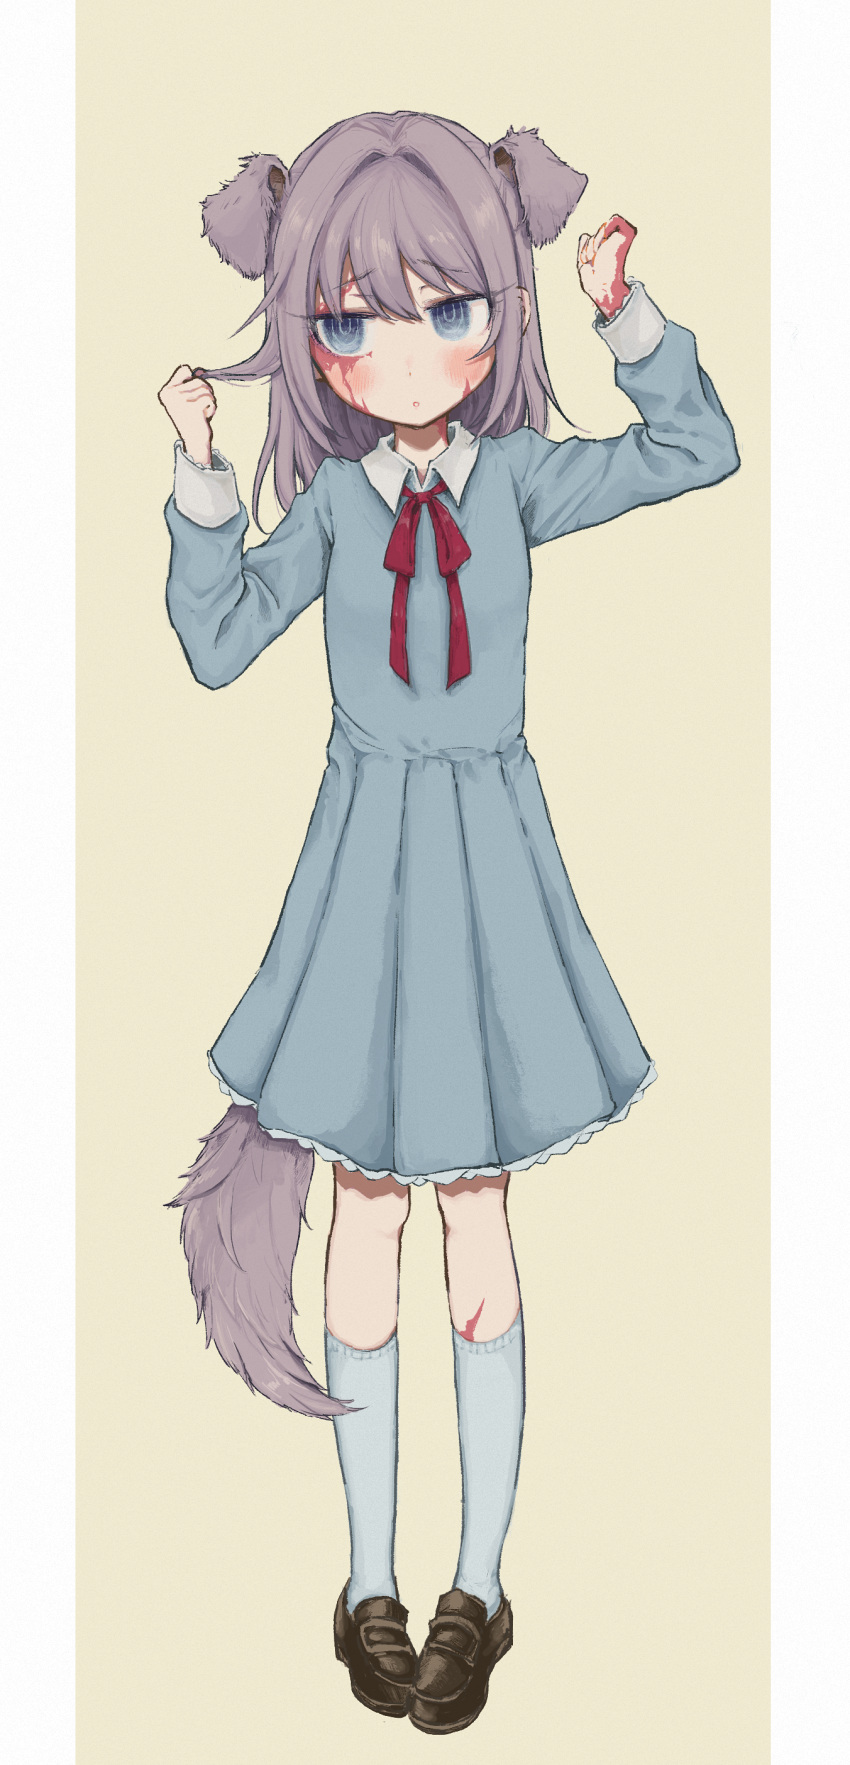 1girl absurdres animal_ears bangs black_footwear blue_dress blue_eyes blush burn_scar dog_ears dog_tail dorei_to_no_seikatsu_~teaching_feeling~ dress extra_ears eyebrows_visible_through_hair eyes_visible_through_hair full_body grey_hair hair_between_eyes hands_up highres kemonomimi_mode kneehighs long_hair long_sleeves looking_at_viewer neck_ribbon parted_lips pigeon-toed pleated_dress red_neckwear red_ribbon ribbon ringed_eyes scar shoes simple_background solo standing sutegoma sylvie_(dorei_to_no_seikatsu) tail white_legwear wing_collar